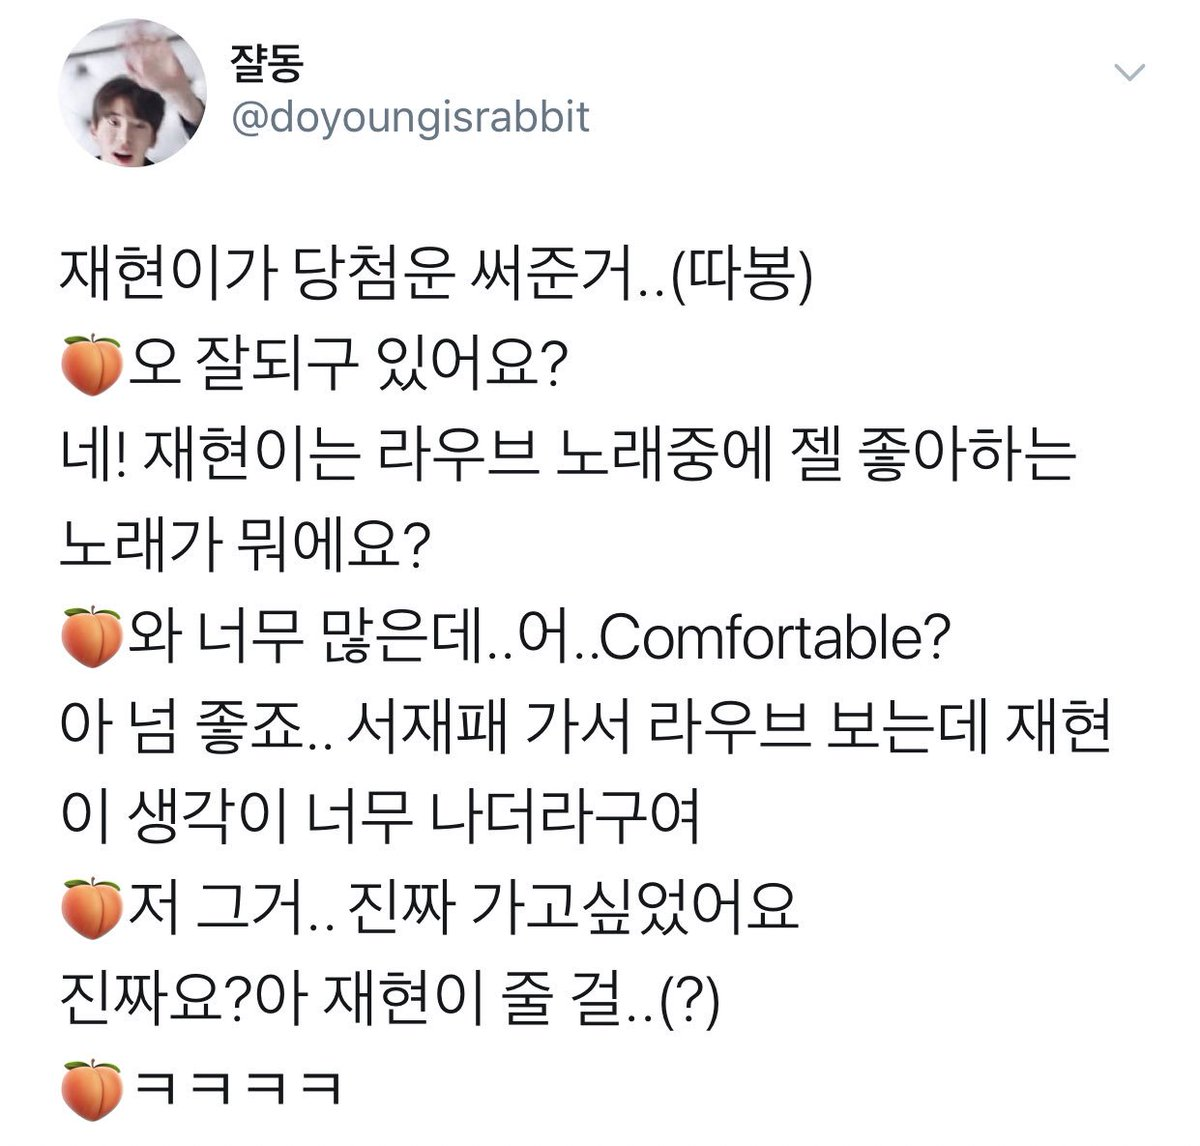 190616 - What is your favorite Lauv song? JH: Wa there are so many.. uh.. Comfortable? - Ah it's really nice.. I went to seoul jazz festival & saw Lauv but Jaehyun kept coming to my mind JH: I really wanted to go for that - Really? Ah should have given it to Jaehyunie JH: ㅋㅋㅋ